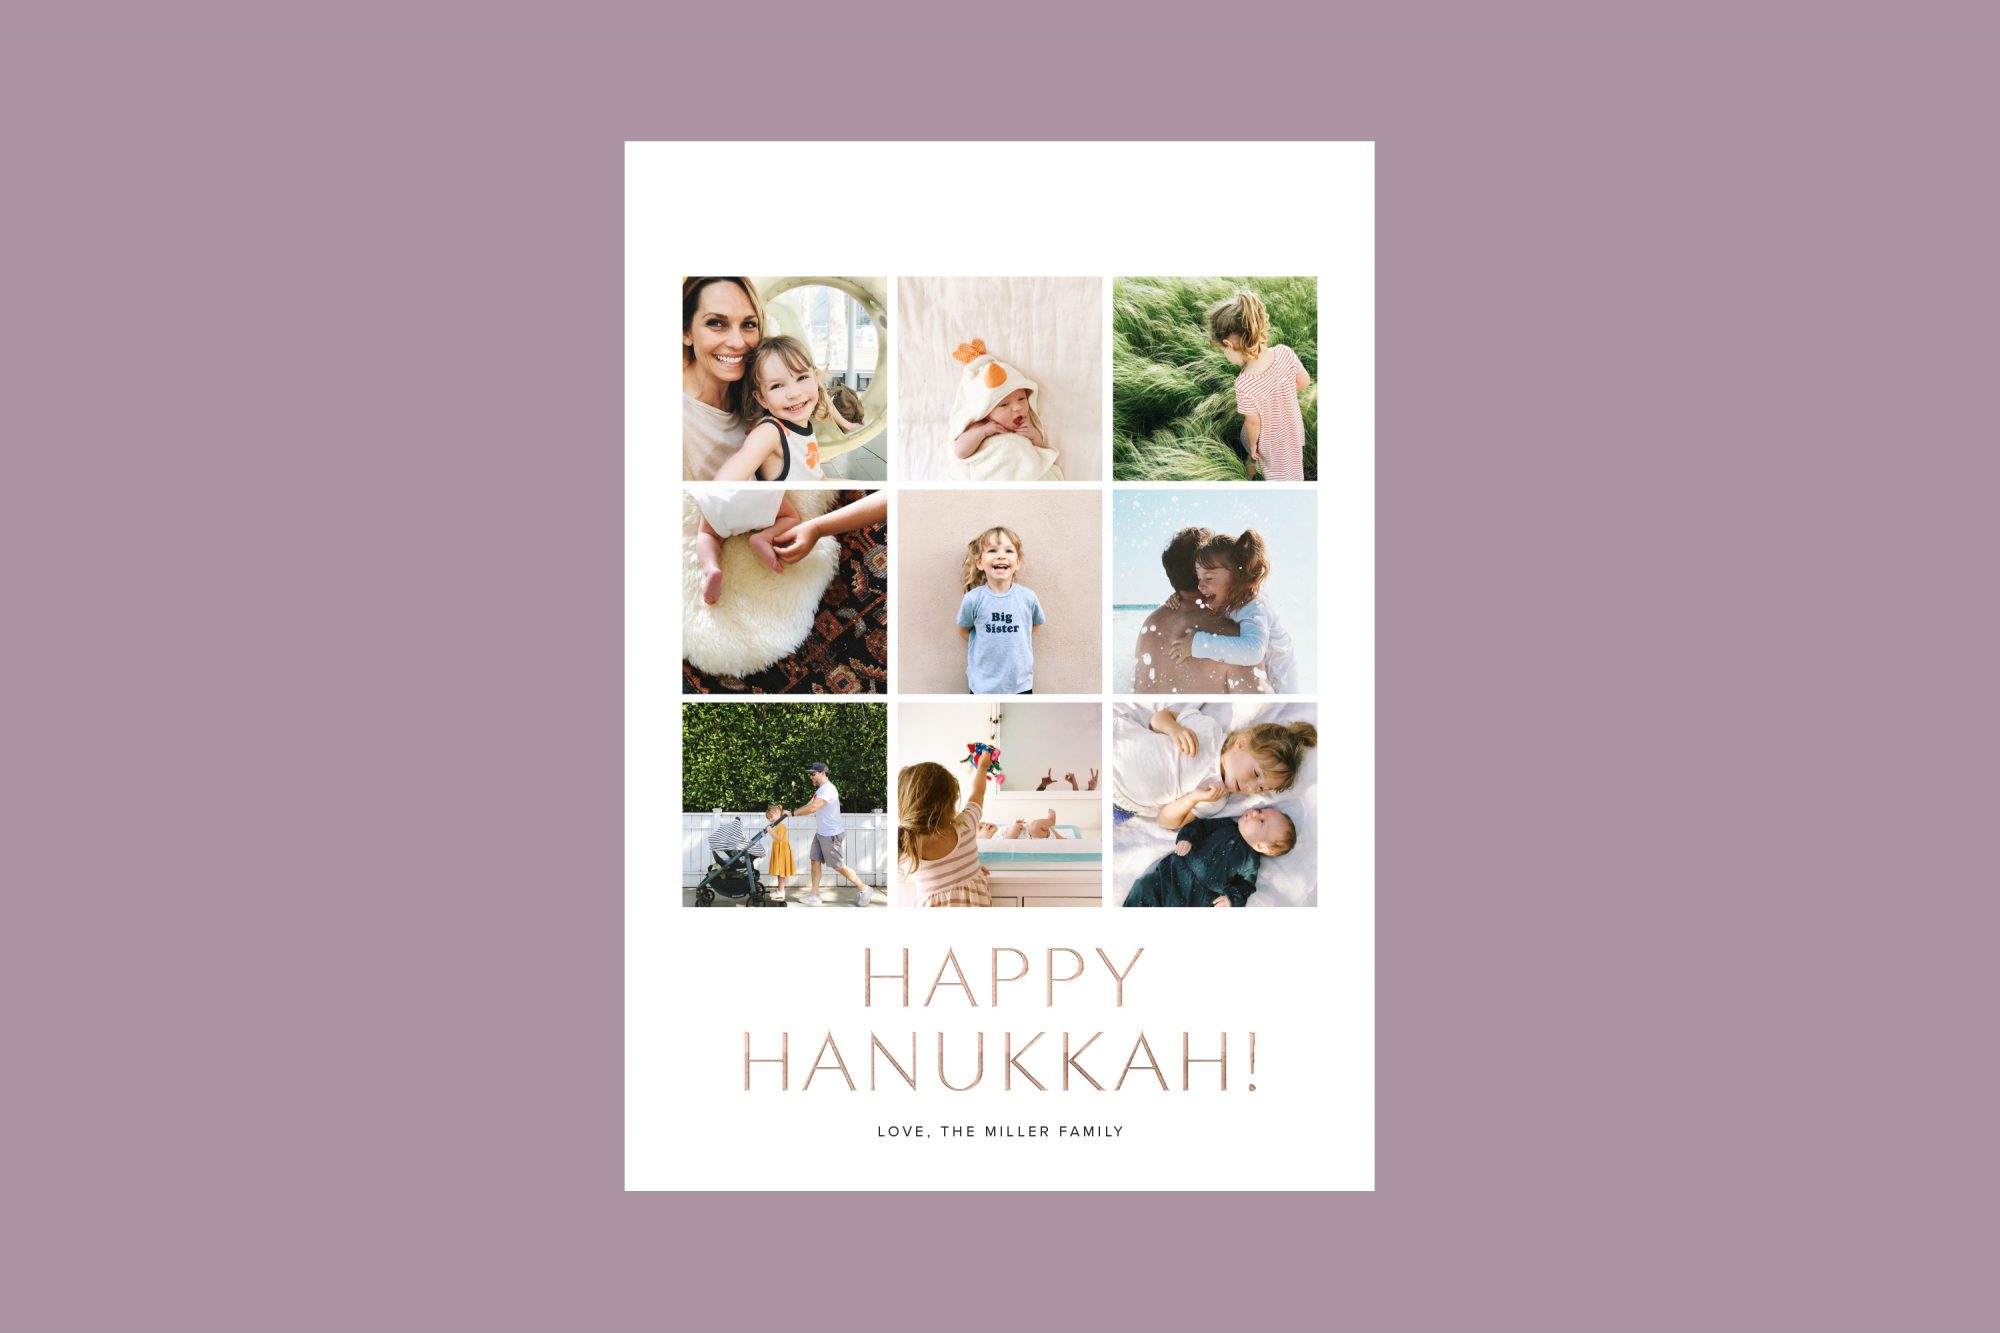 personalized Happy Hanukkah! white card with nine photos